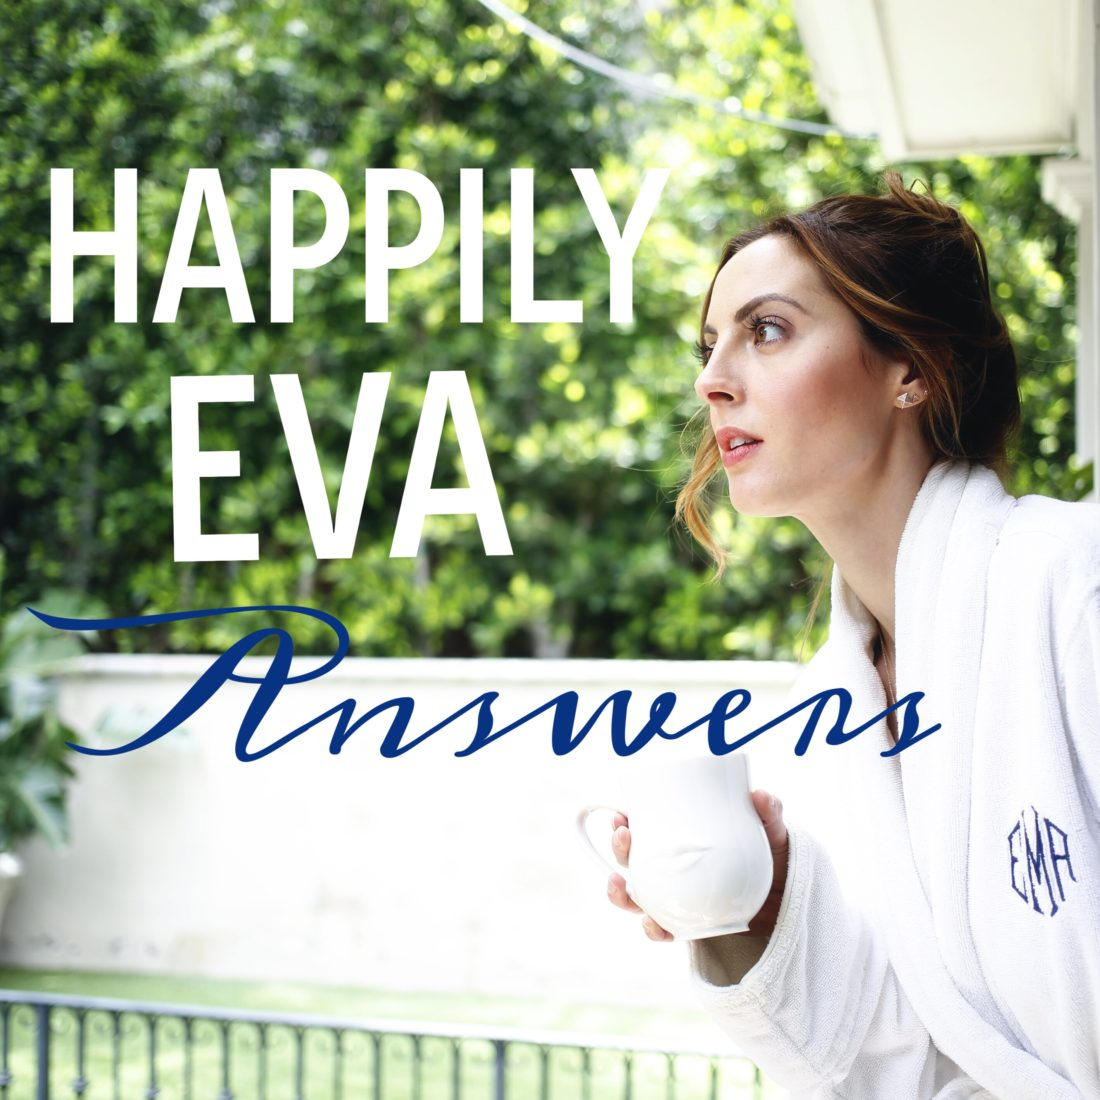 Happily Eva Answers